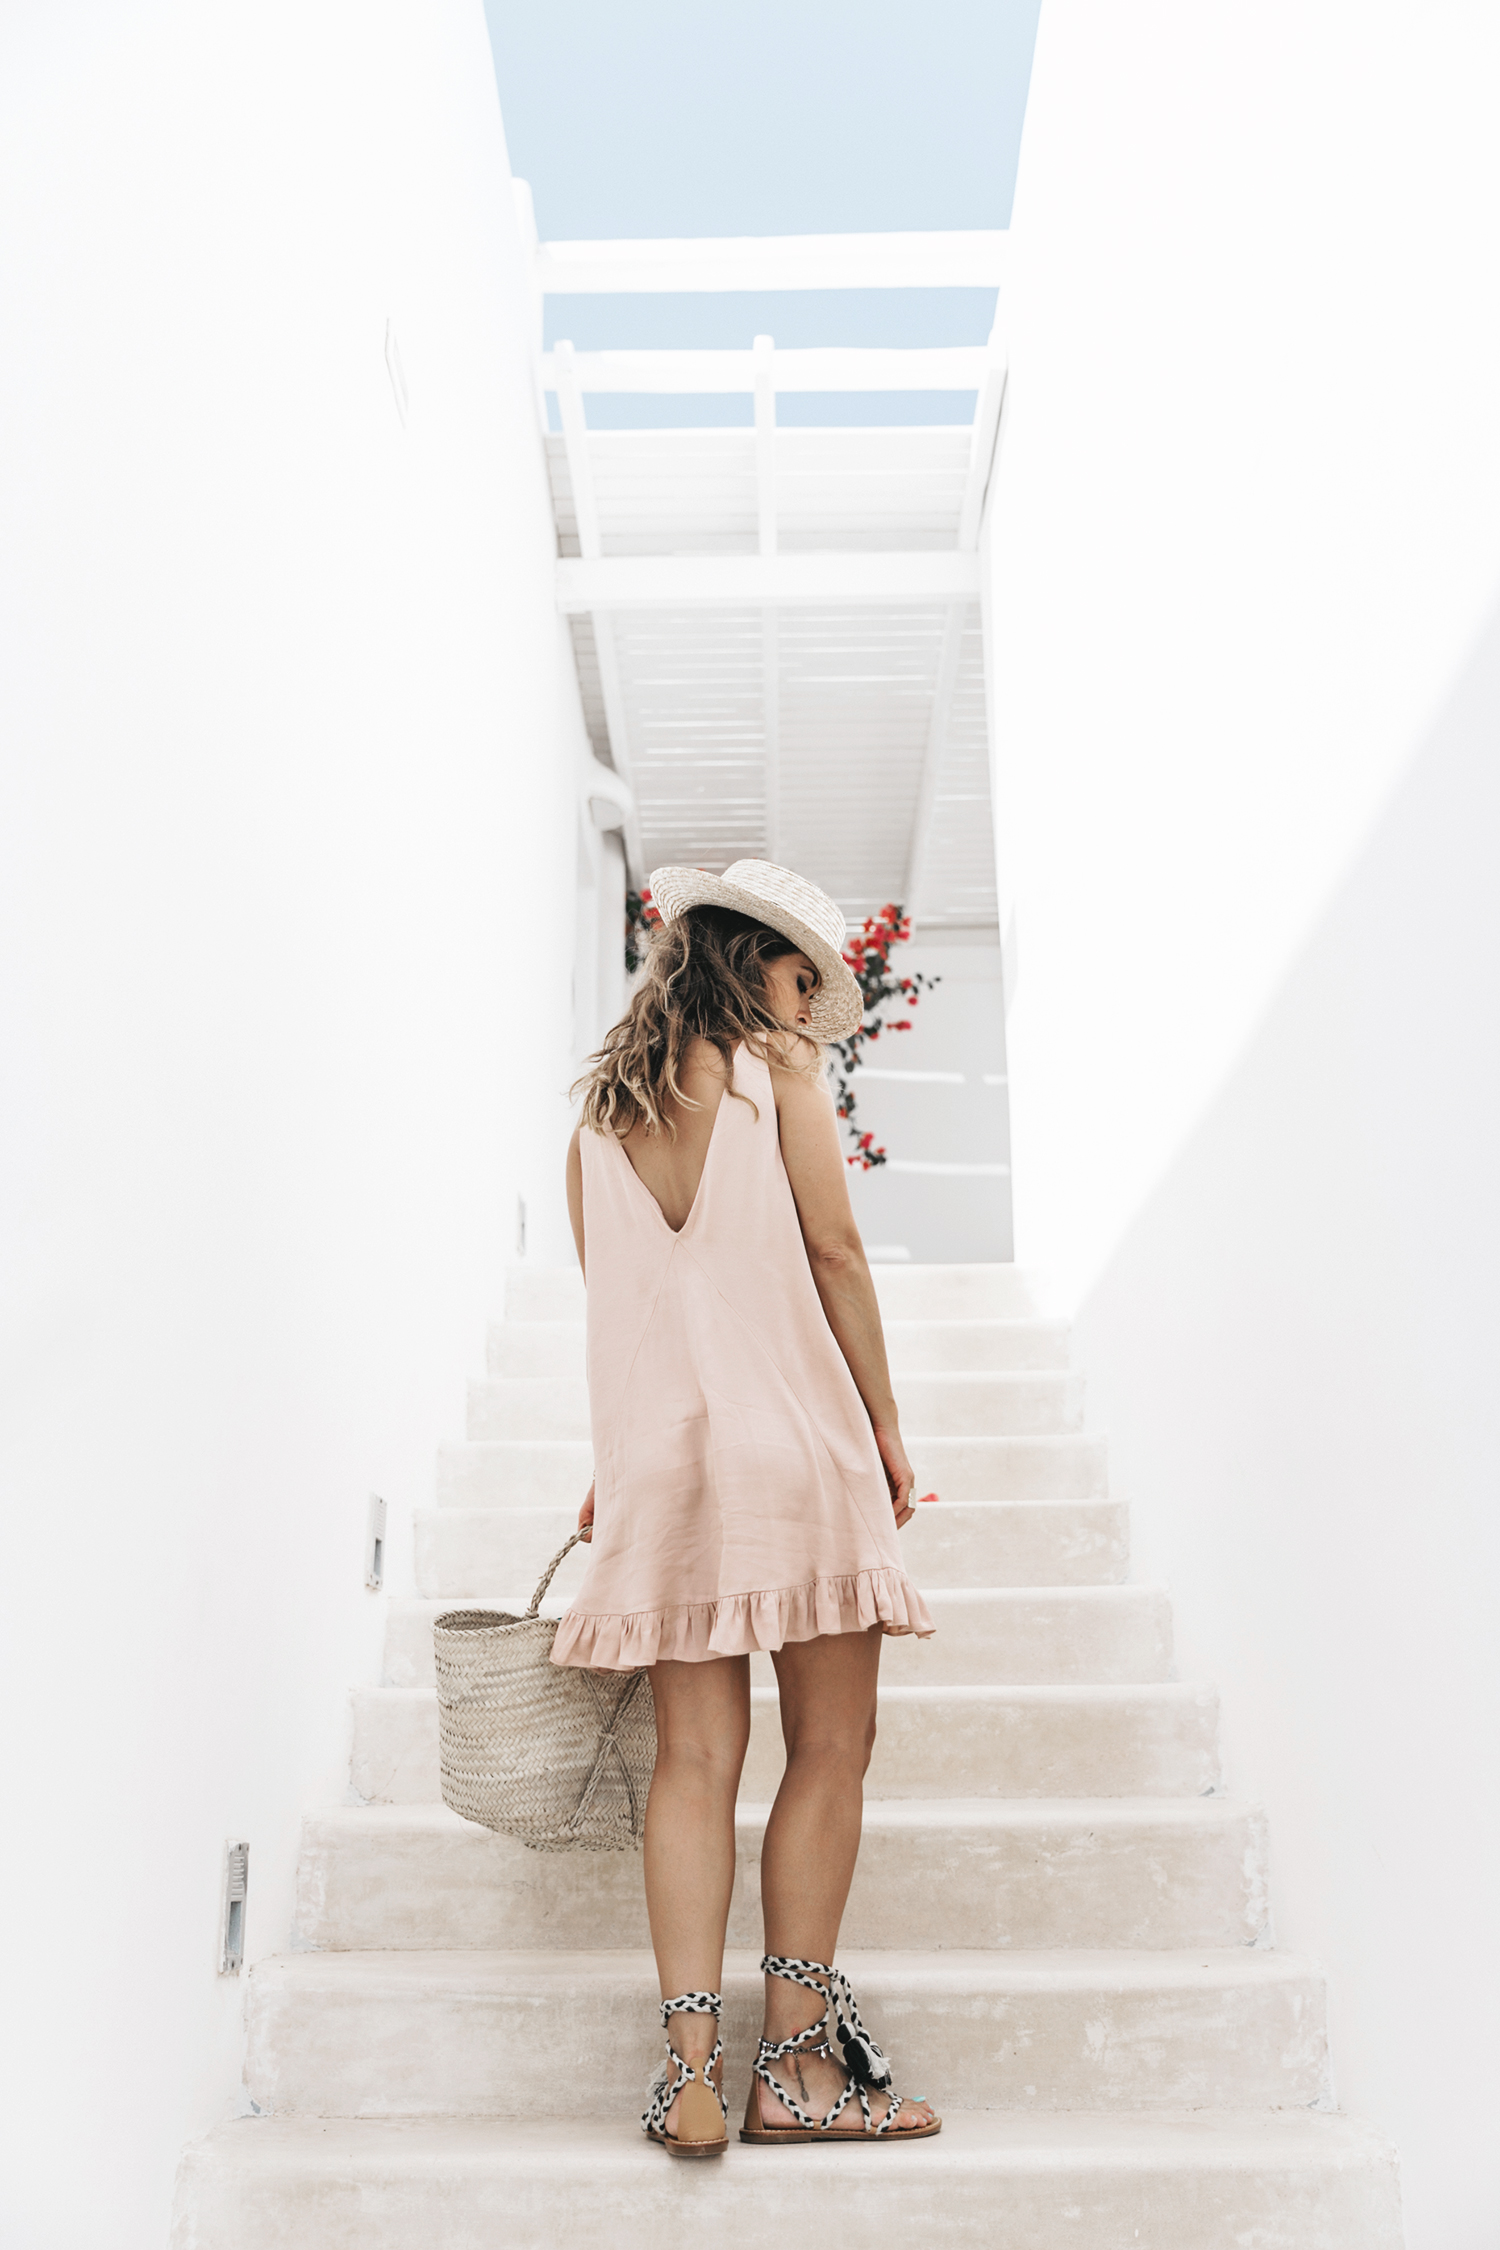 Soludos-Soludos_Escapes-Light_Pink_Dress-Knotted_Sandals-Mykonos-Greece-Collage_Vintage-Summer_Outfit-Street_Style-28